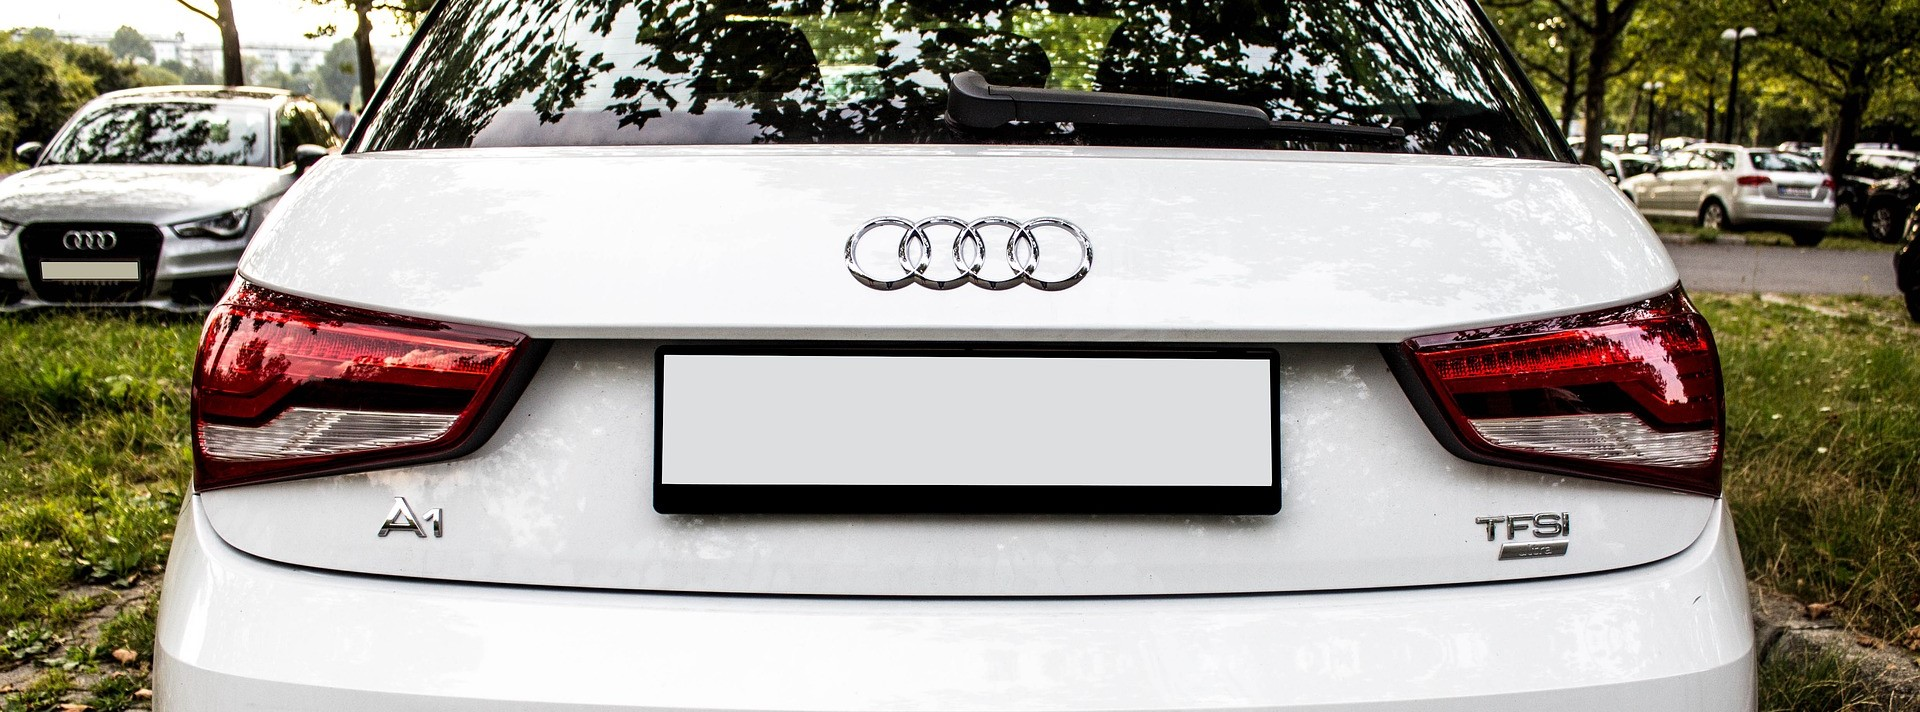 White Audi in Chesapeake, Virginia | Breast Cancer Car Donations